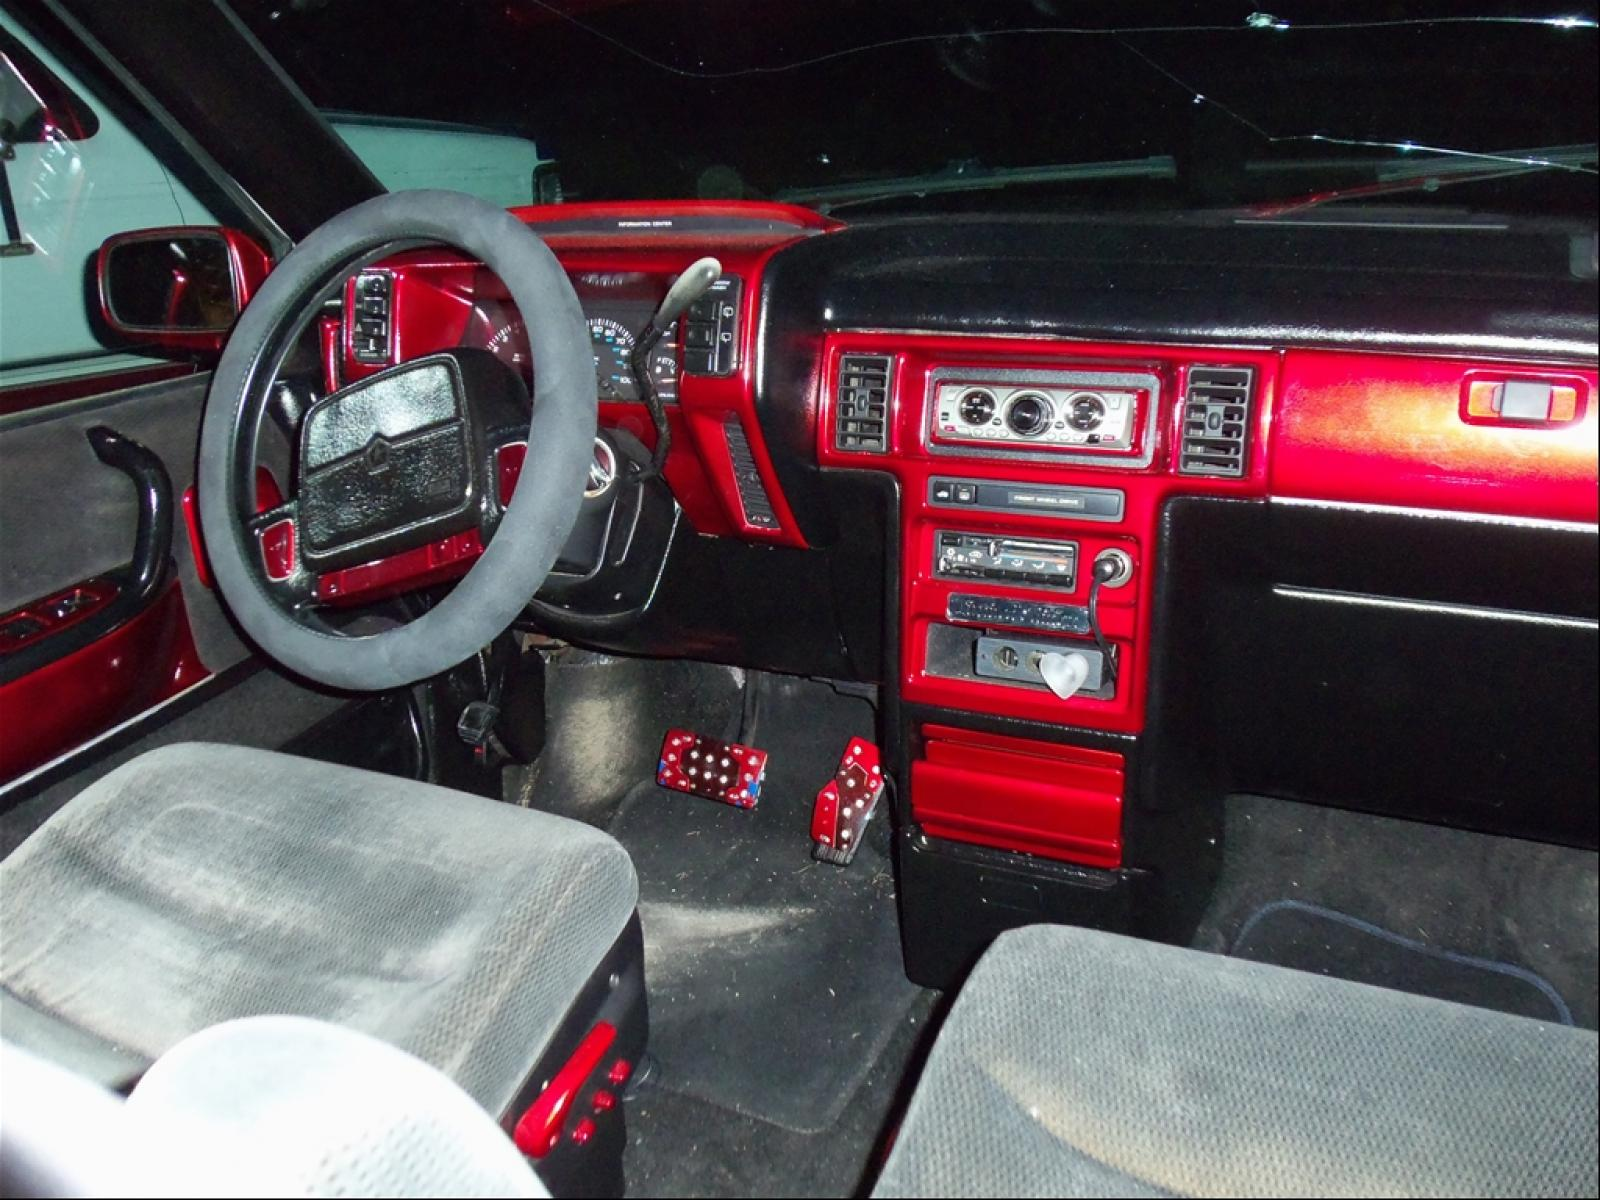 1992 plymouth voyager information and photos zombiedrive